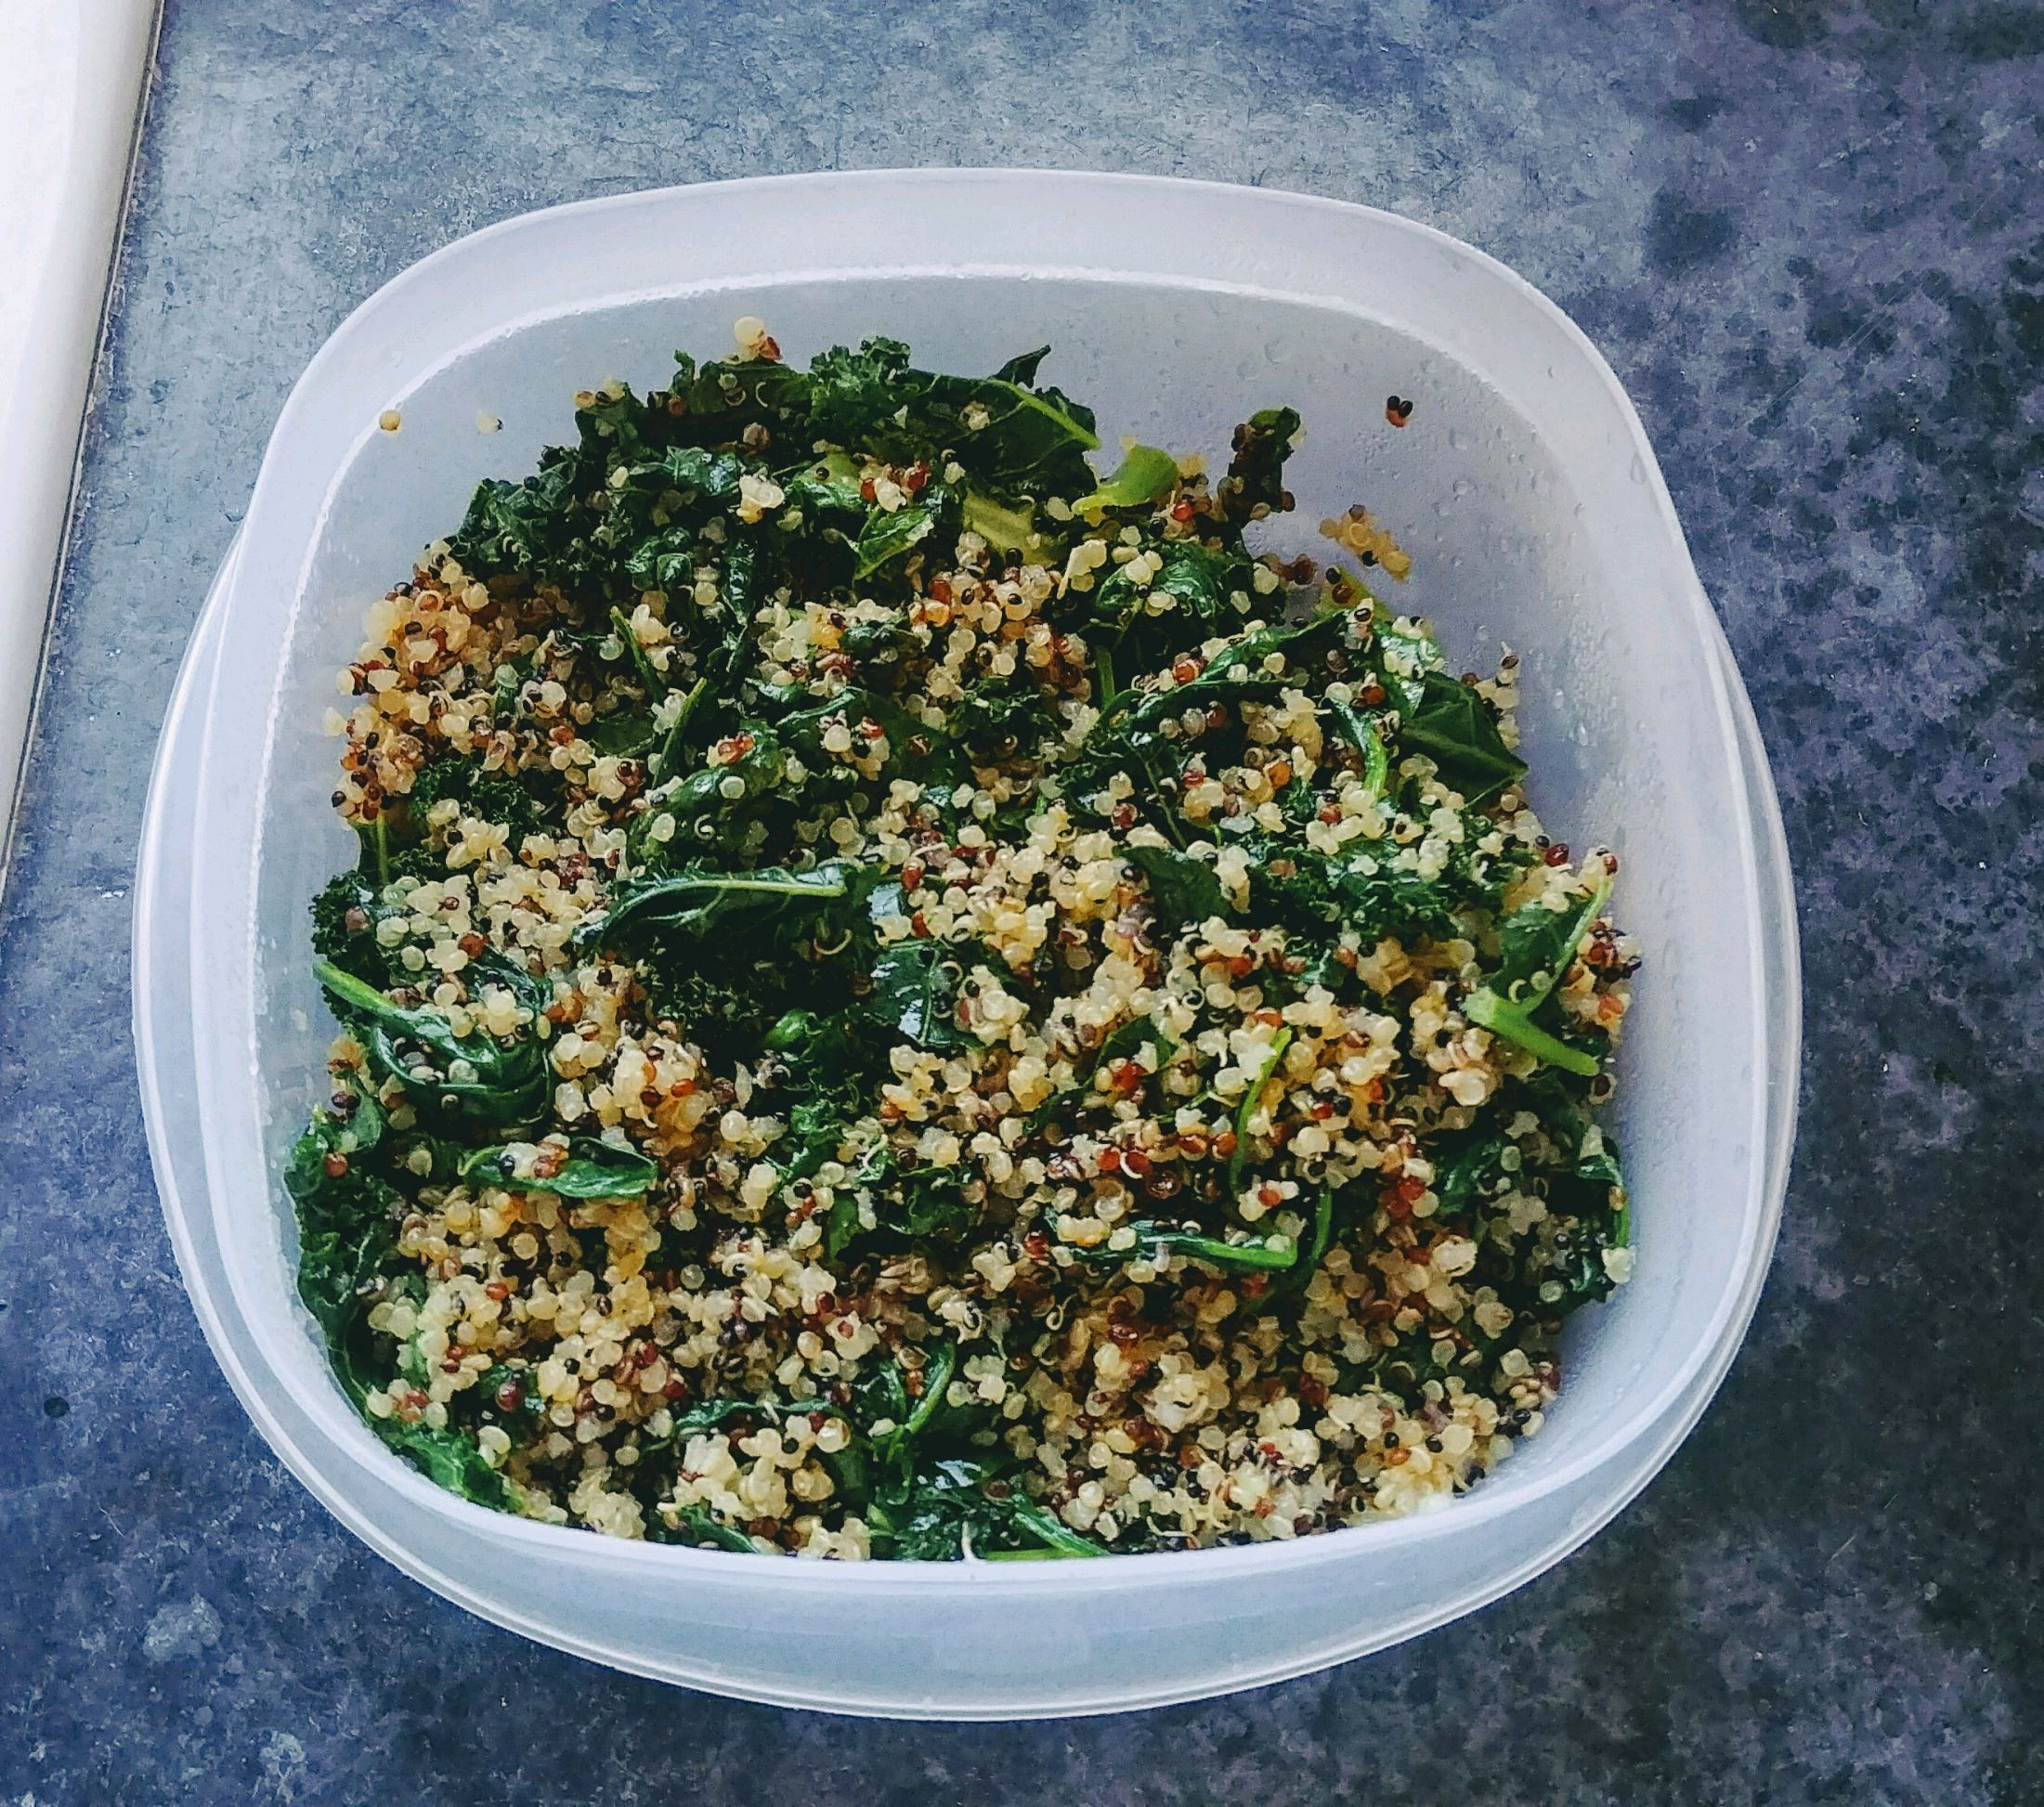 Coconut quinoa with kale and roasted red potatoes and broccoli